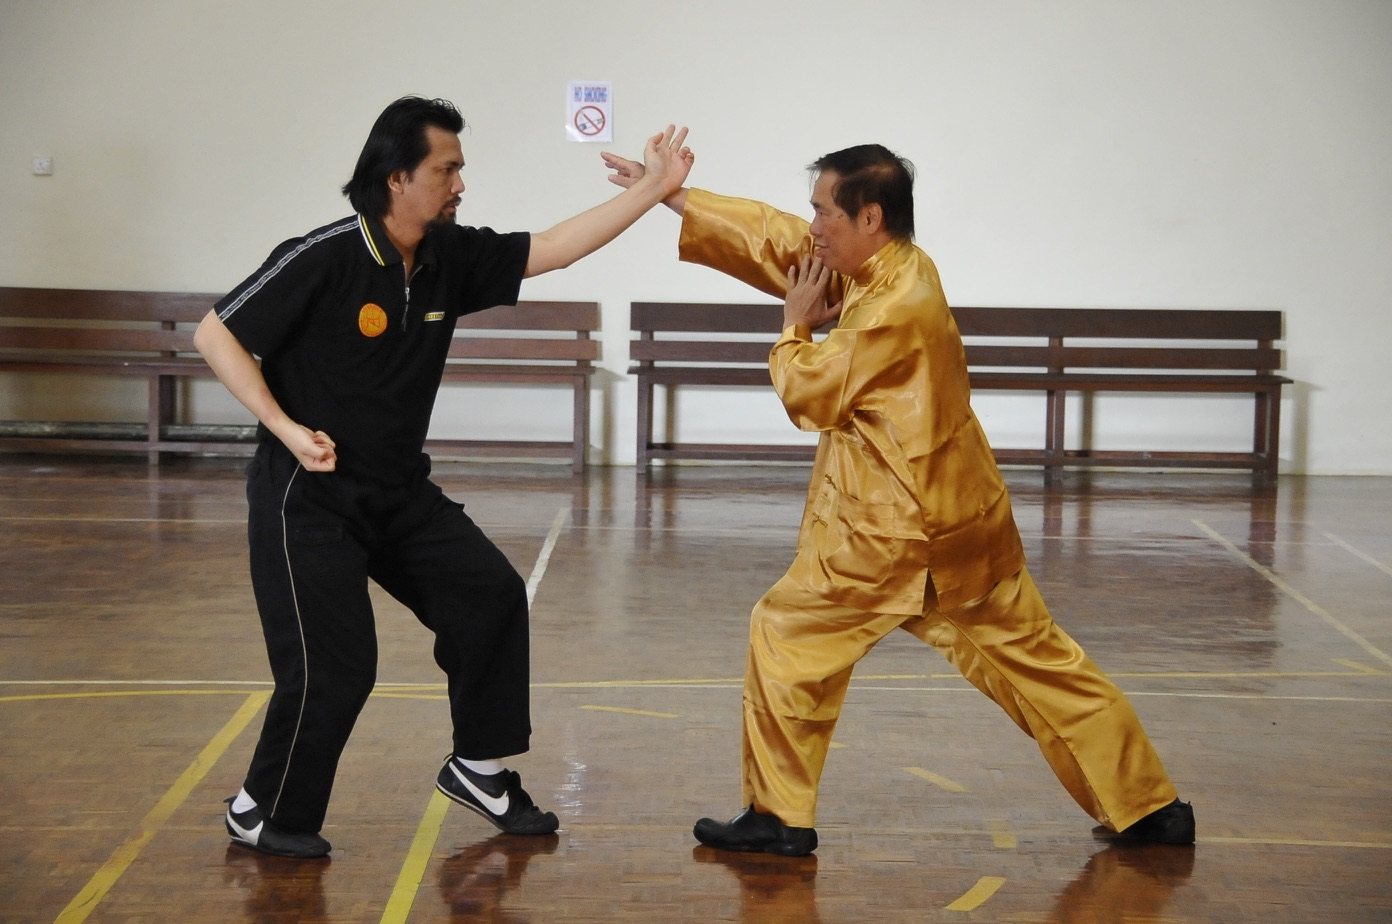 Shaolin combat Sequence